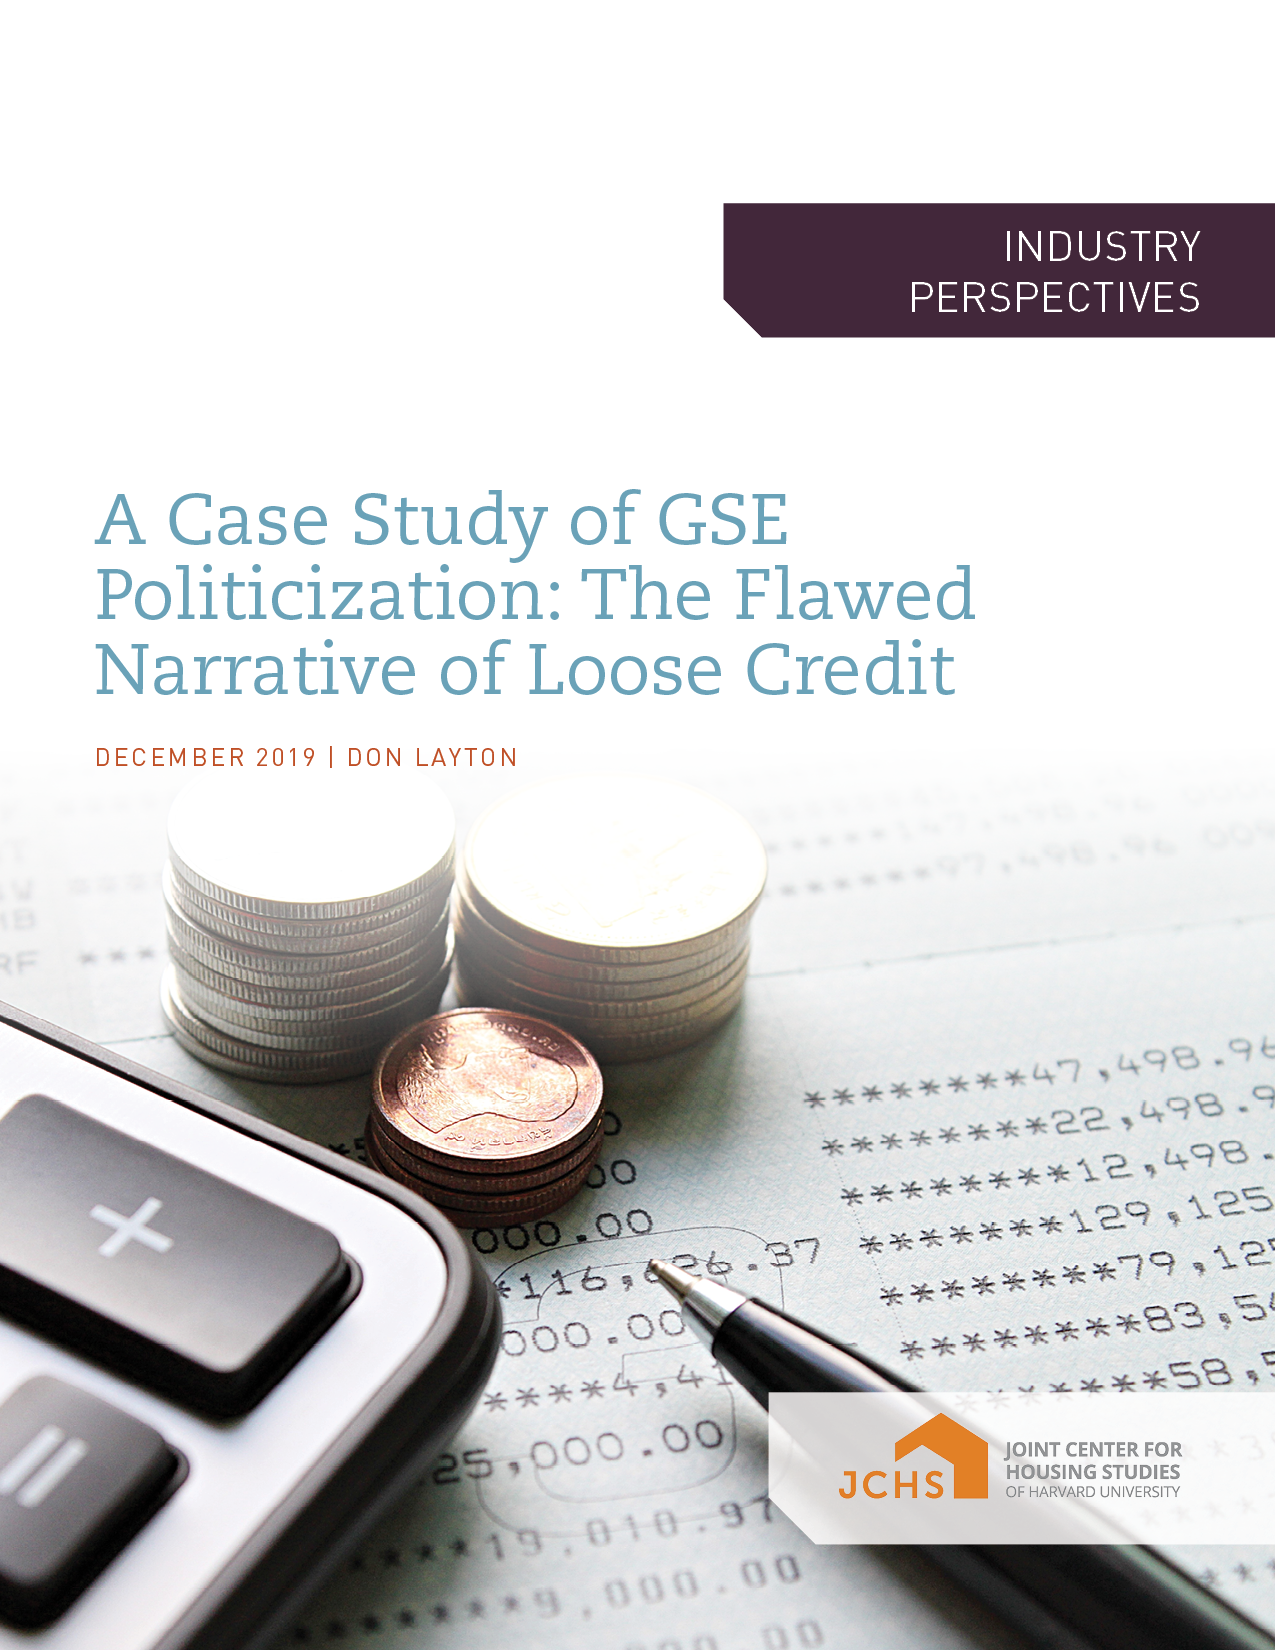 A Case Study of GSE Politicization: The Flawed Narrative of Loose Credit